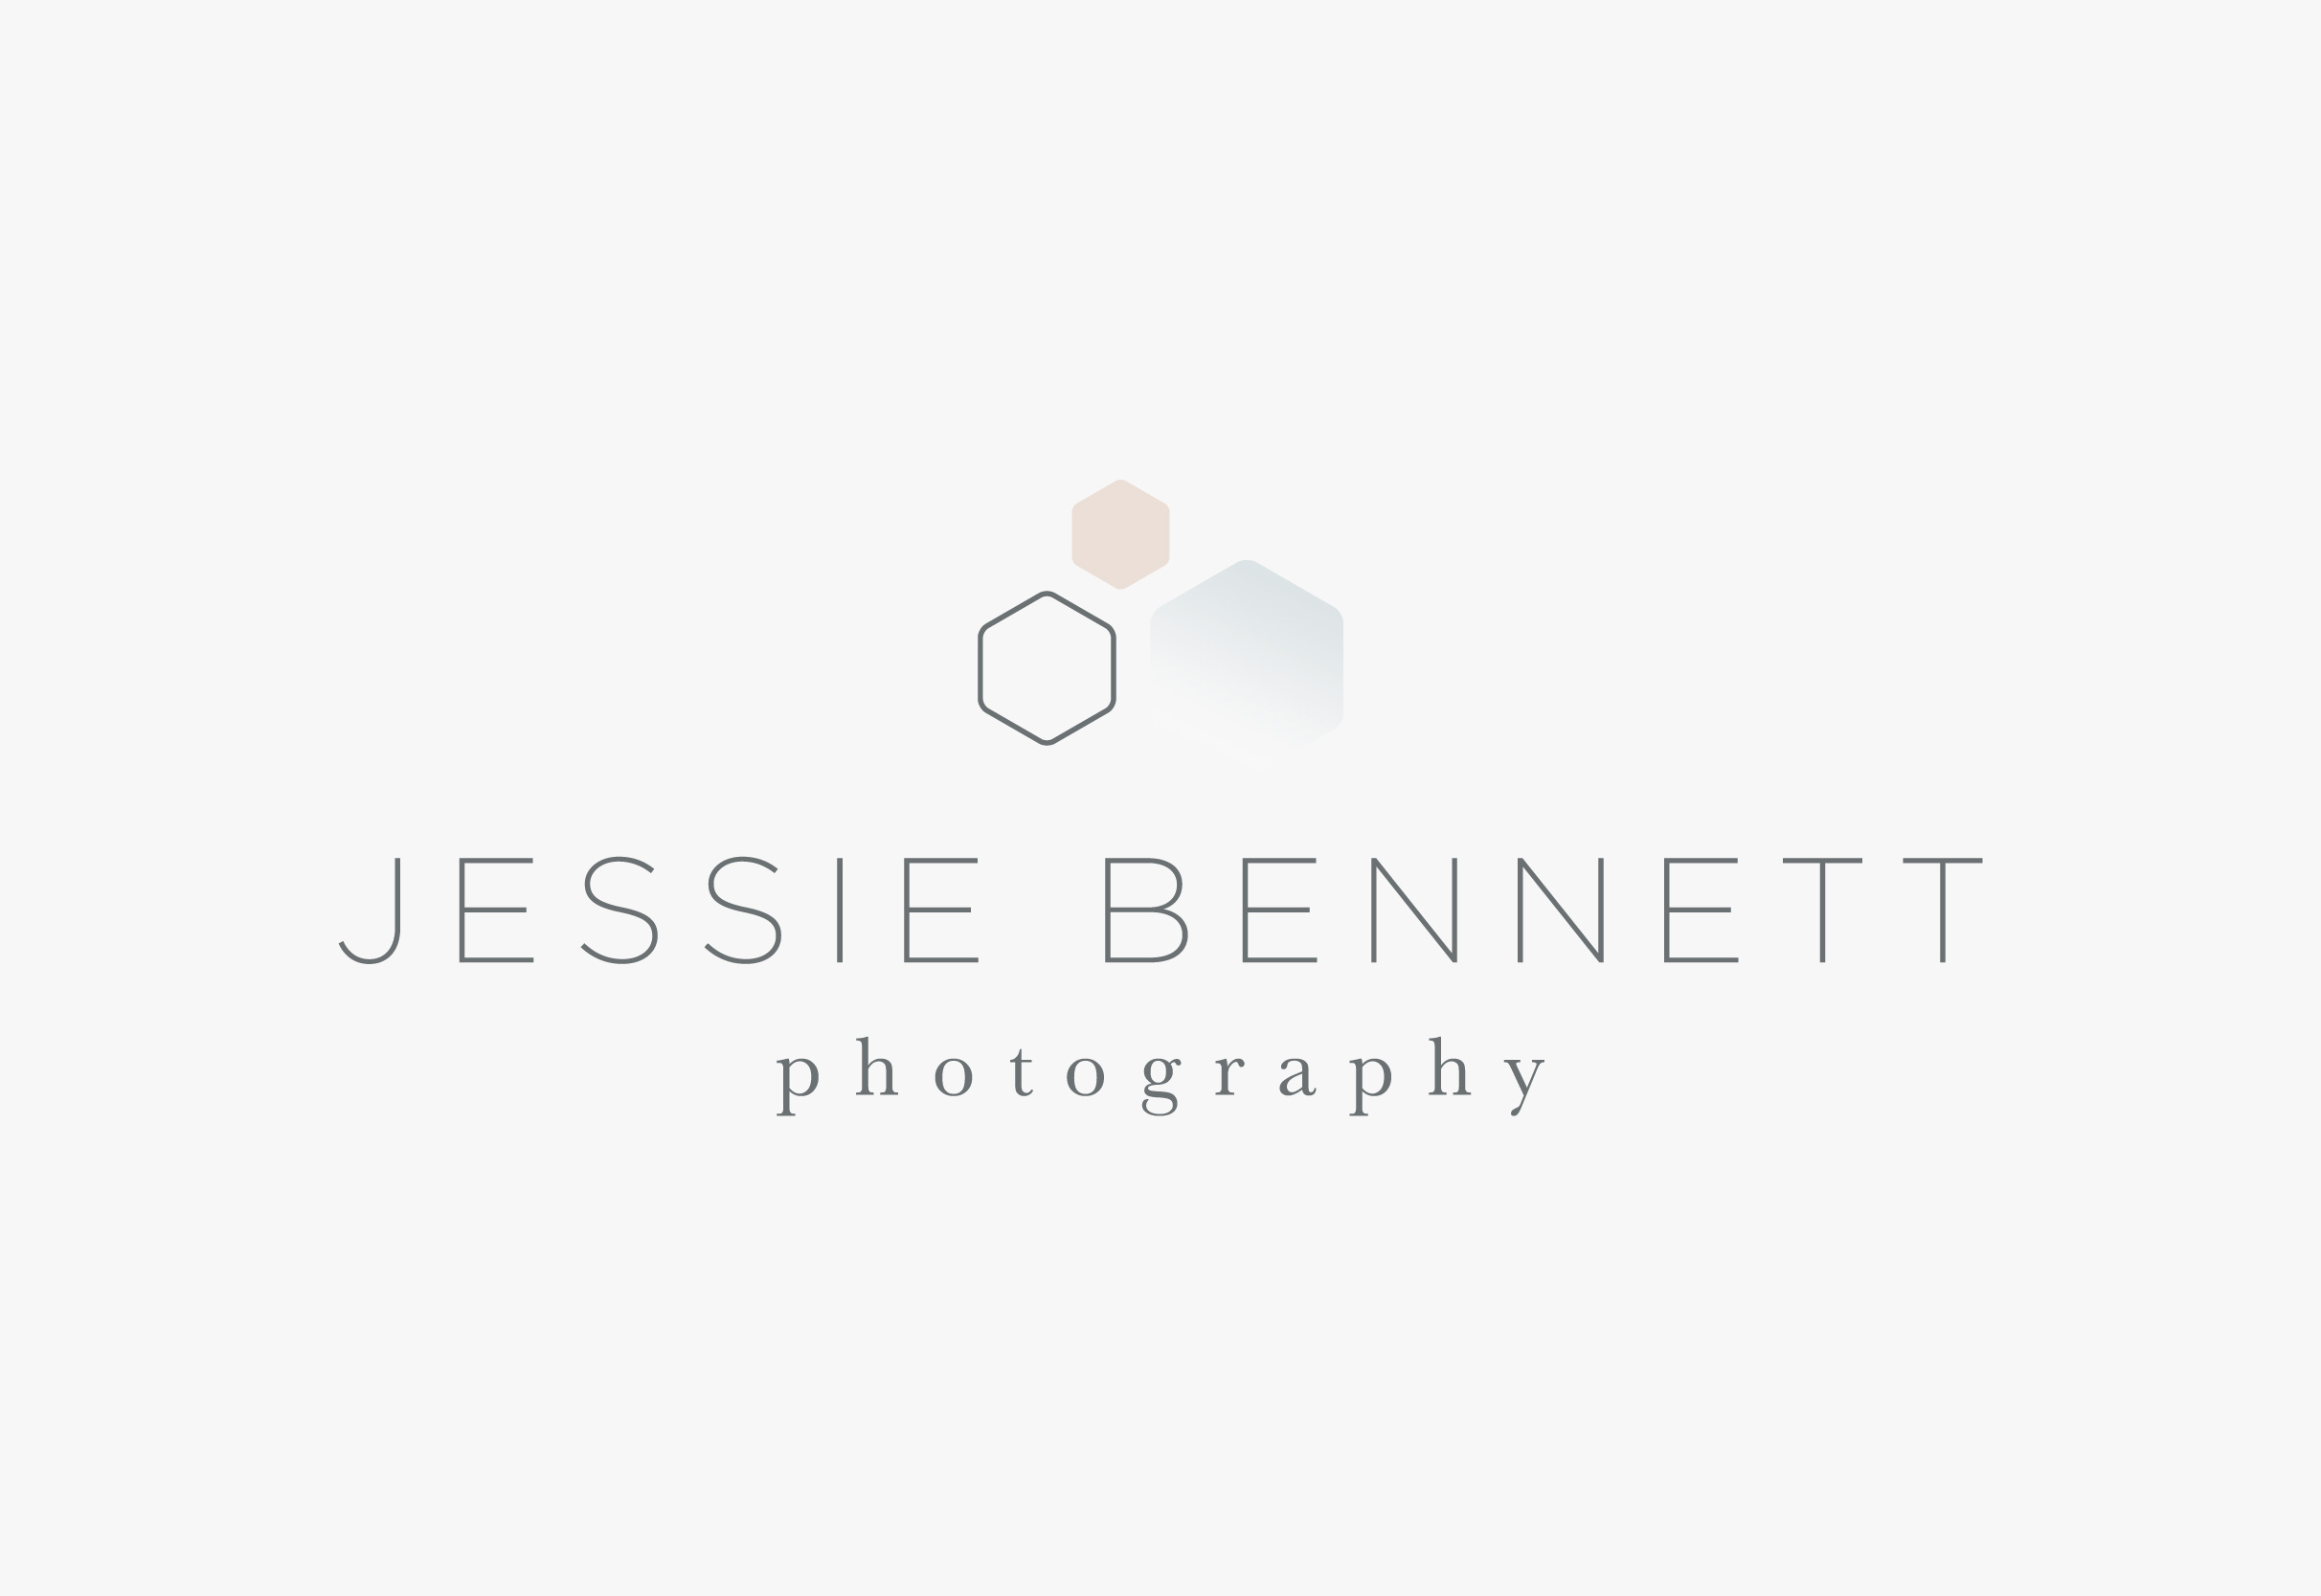 Jessie Bennett Photography Branding + Website | Letterform Creative